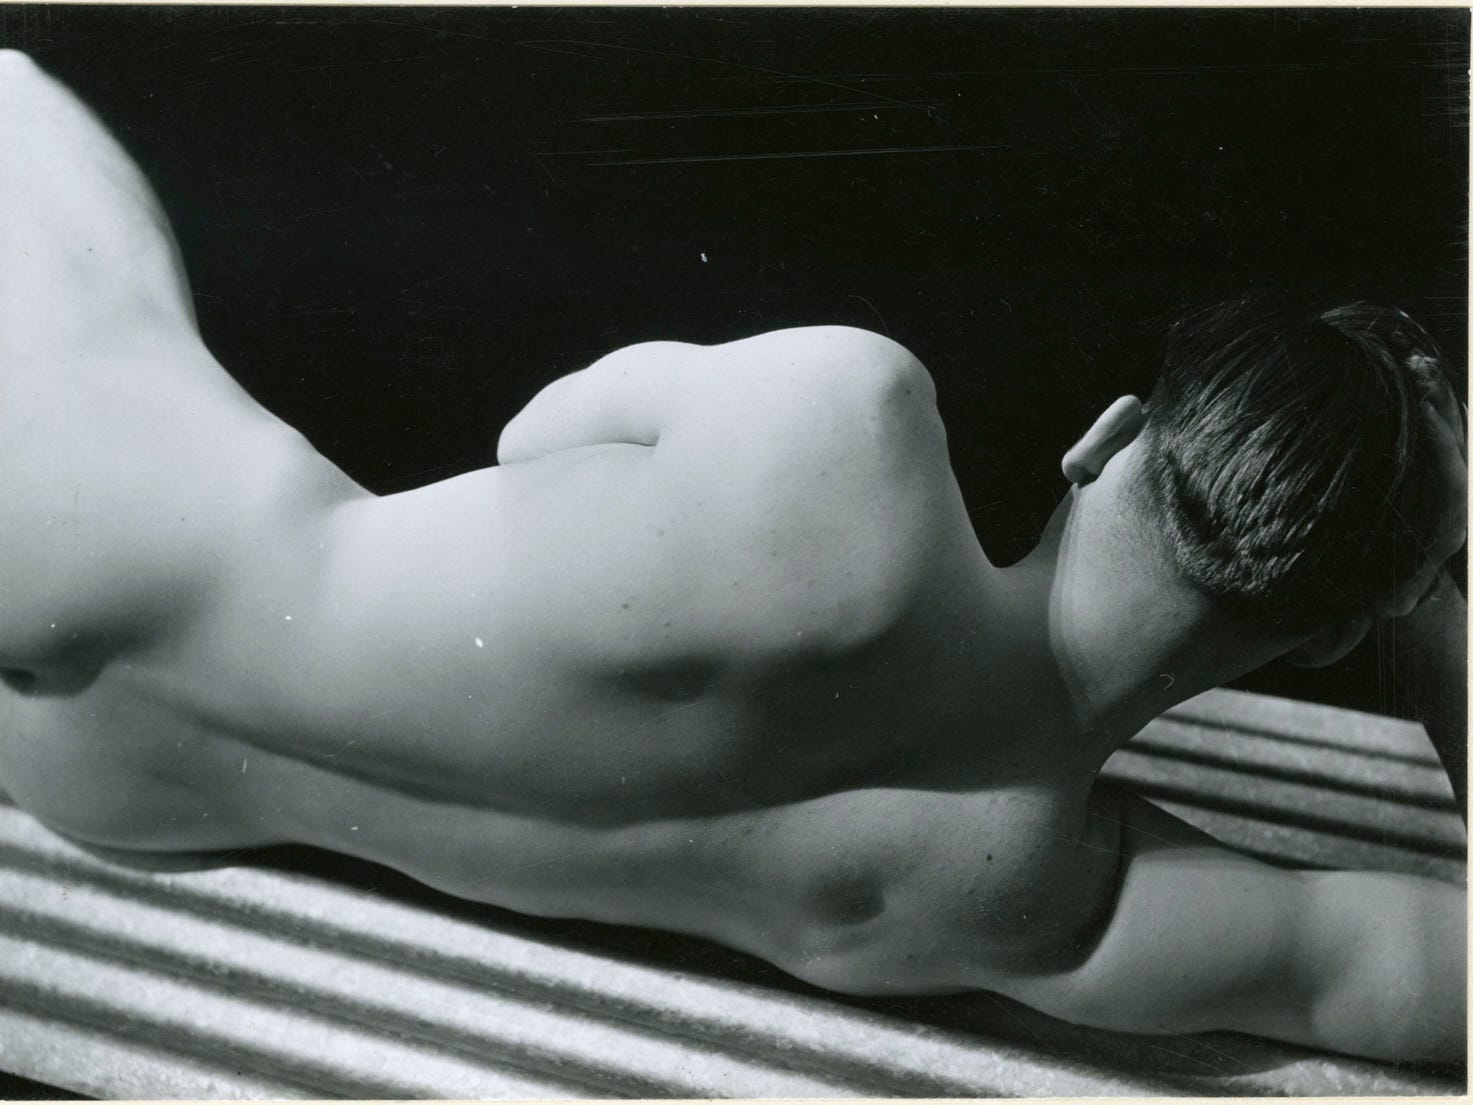 "George Platt Lynes (American, 1907–1955), Name Withheld, 1930, gelatin silver print, 6-1/4 × 4-1/2 in.  ""Sensual / Sexual / Social:  The Photography of George Platt Lynes"" exhibit will be at Newfields, Sept. 30, 2018 through Feb. 24, 2019.  Photo is from the Collections of the Kinsey Institute, Indiana University.  © Estate of George Platt Lynes."